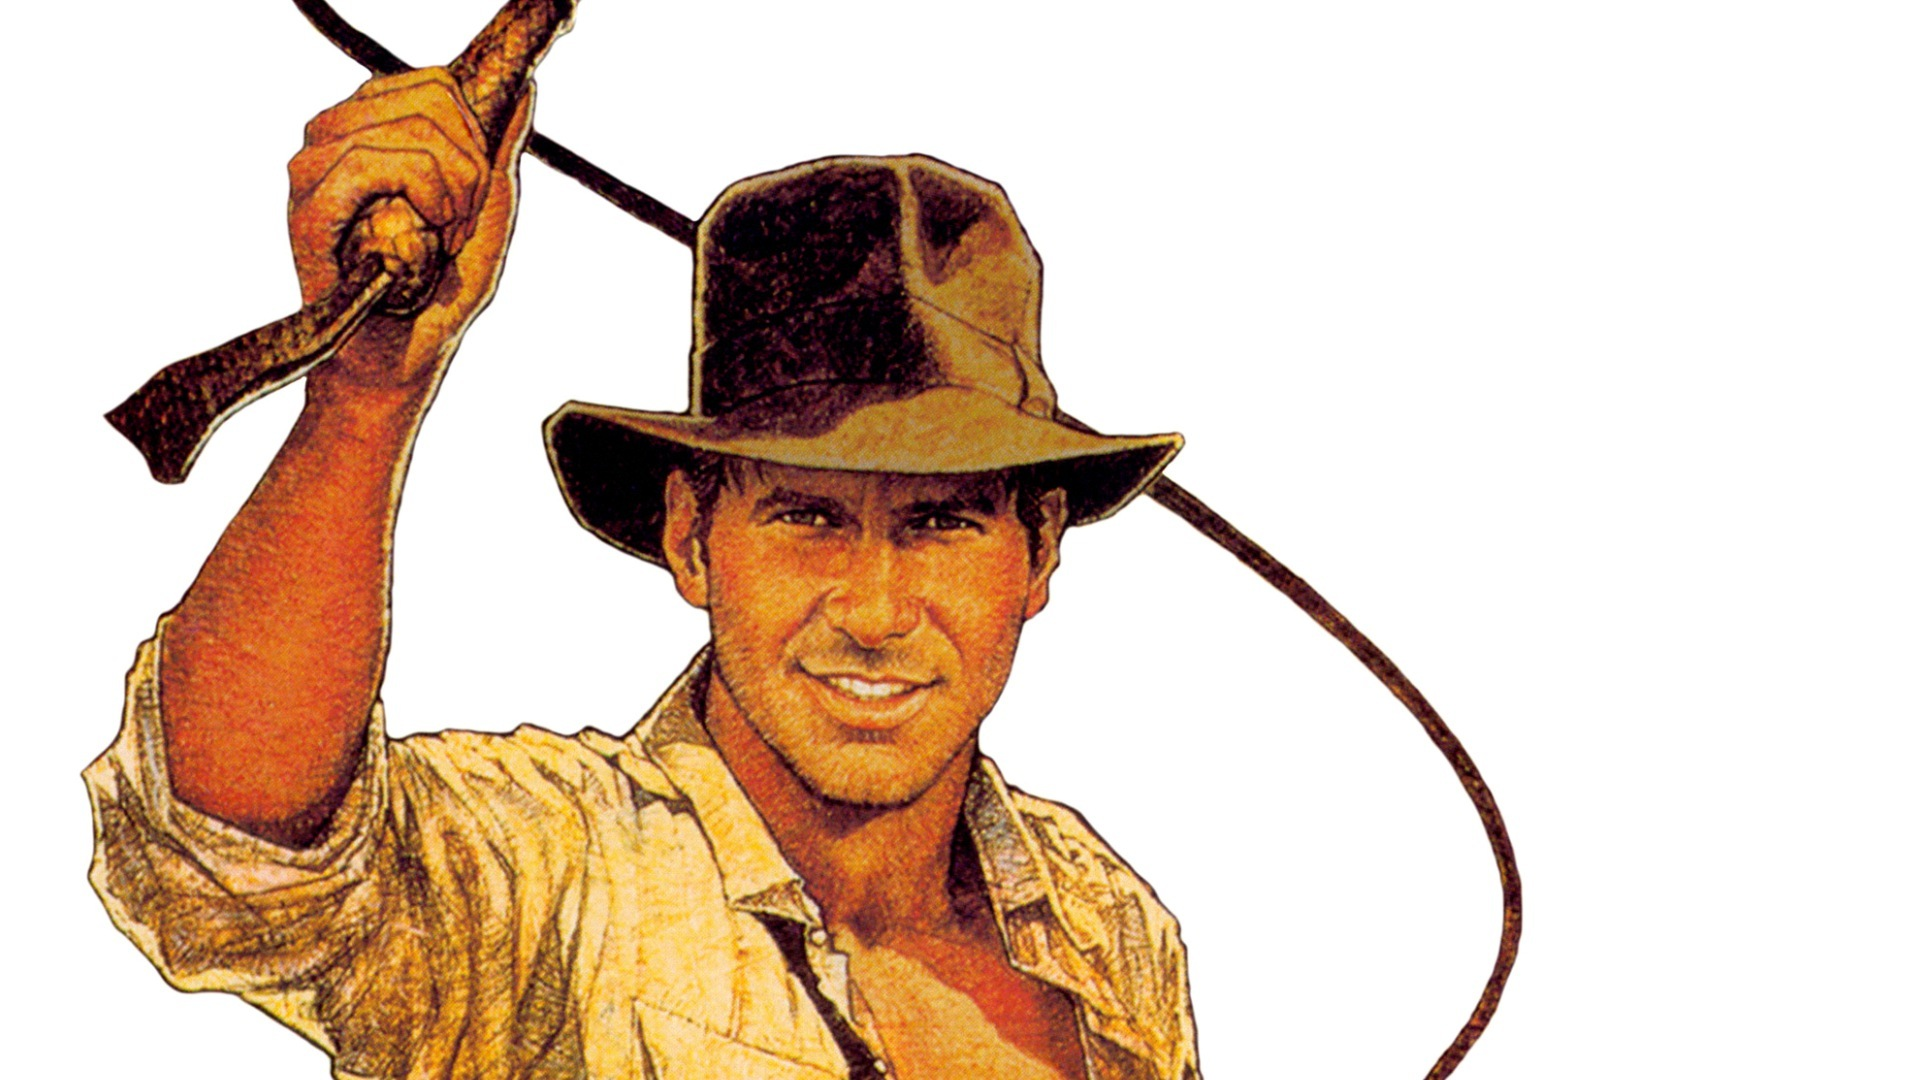 Indiana Jones podría estar de regreso